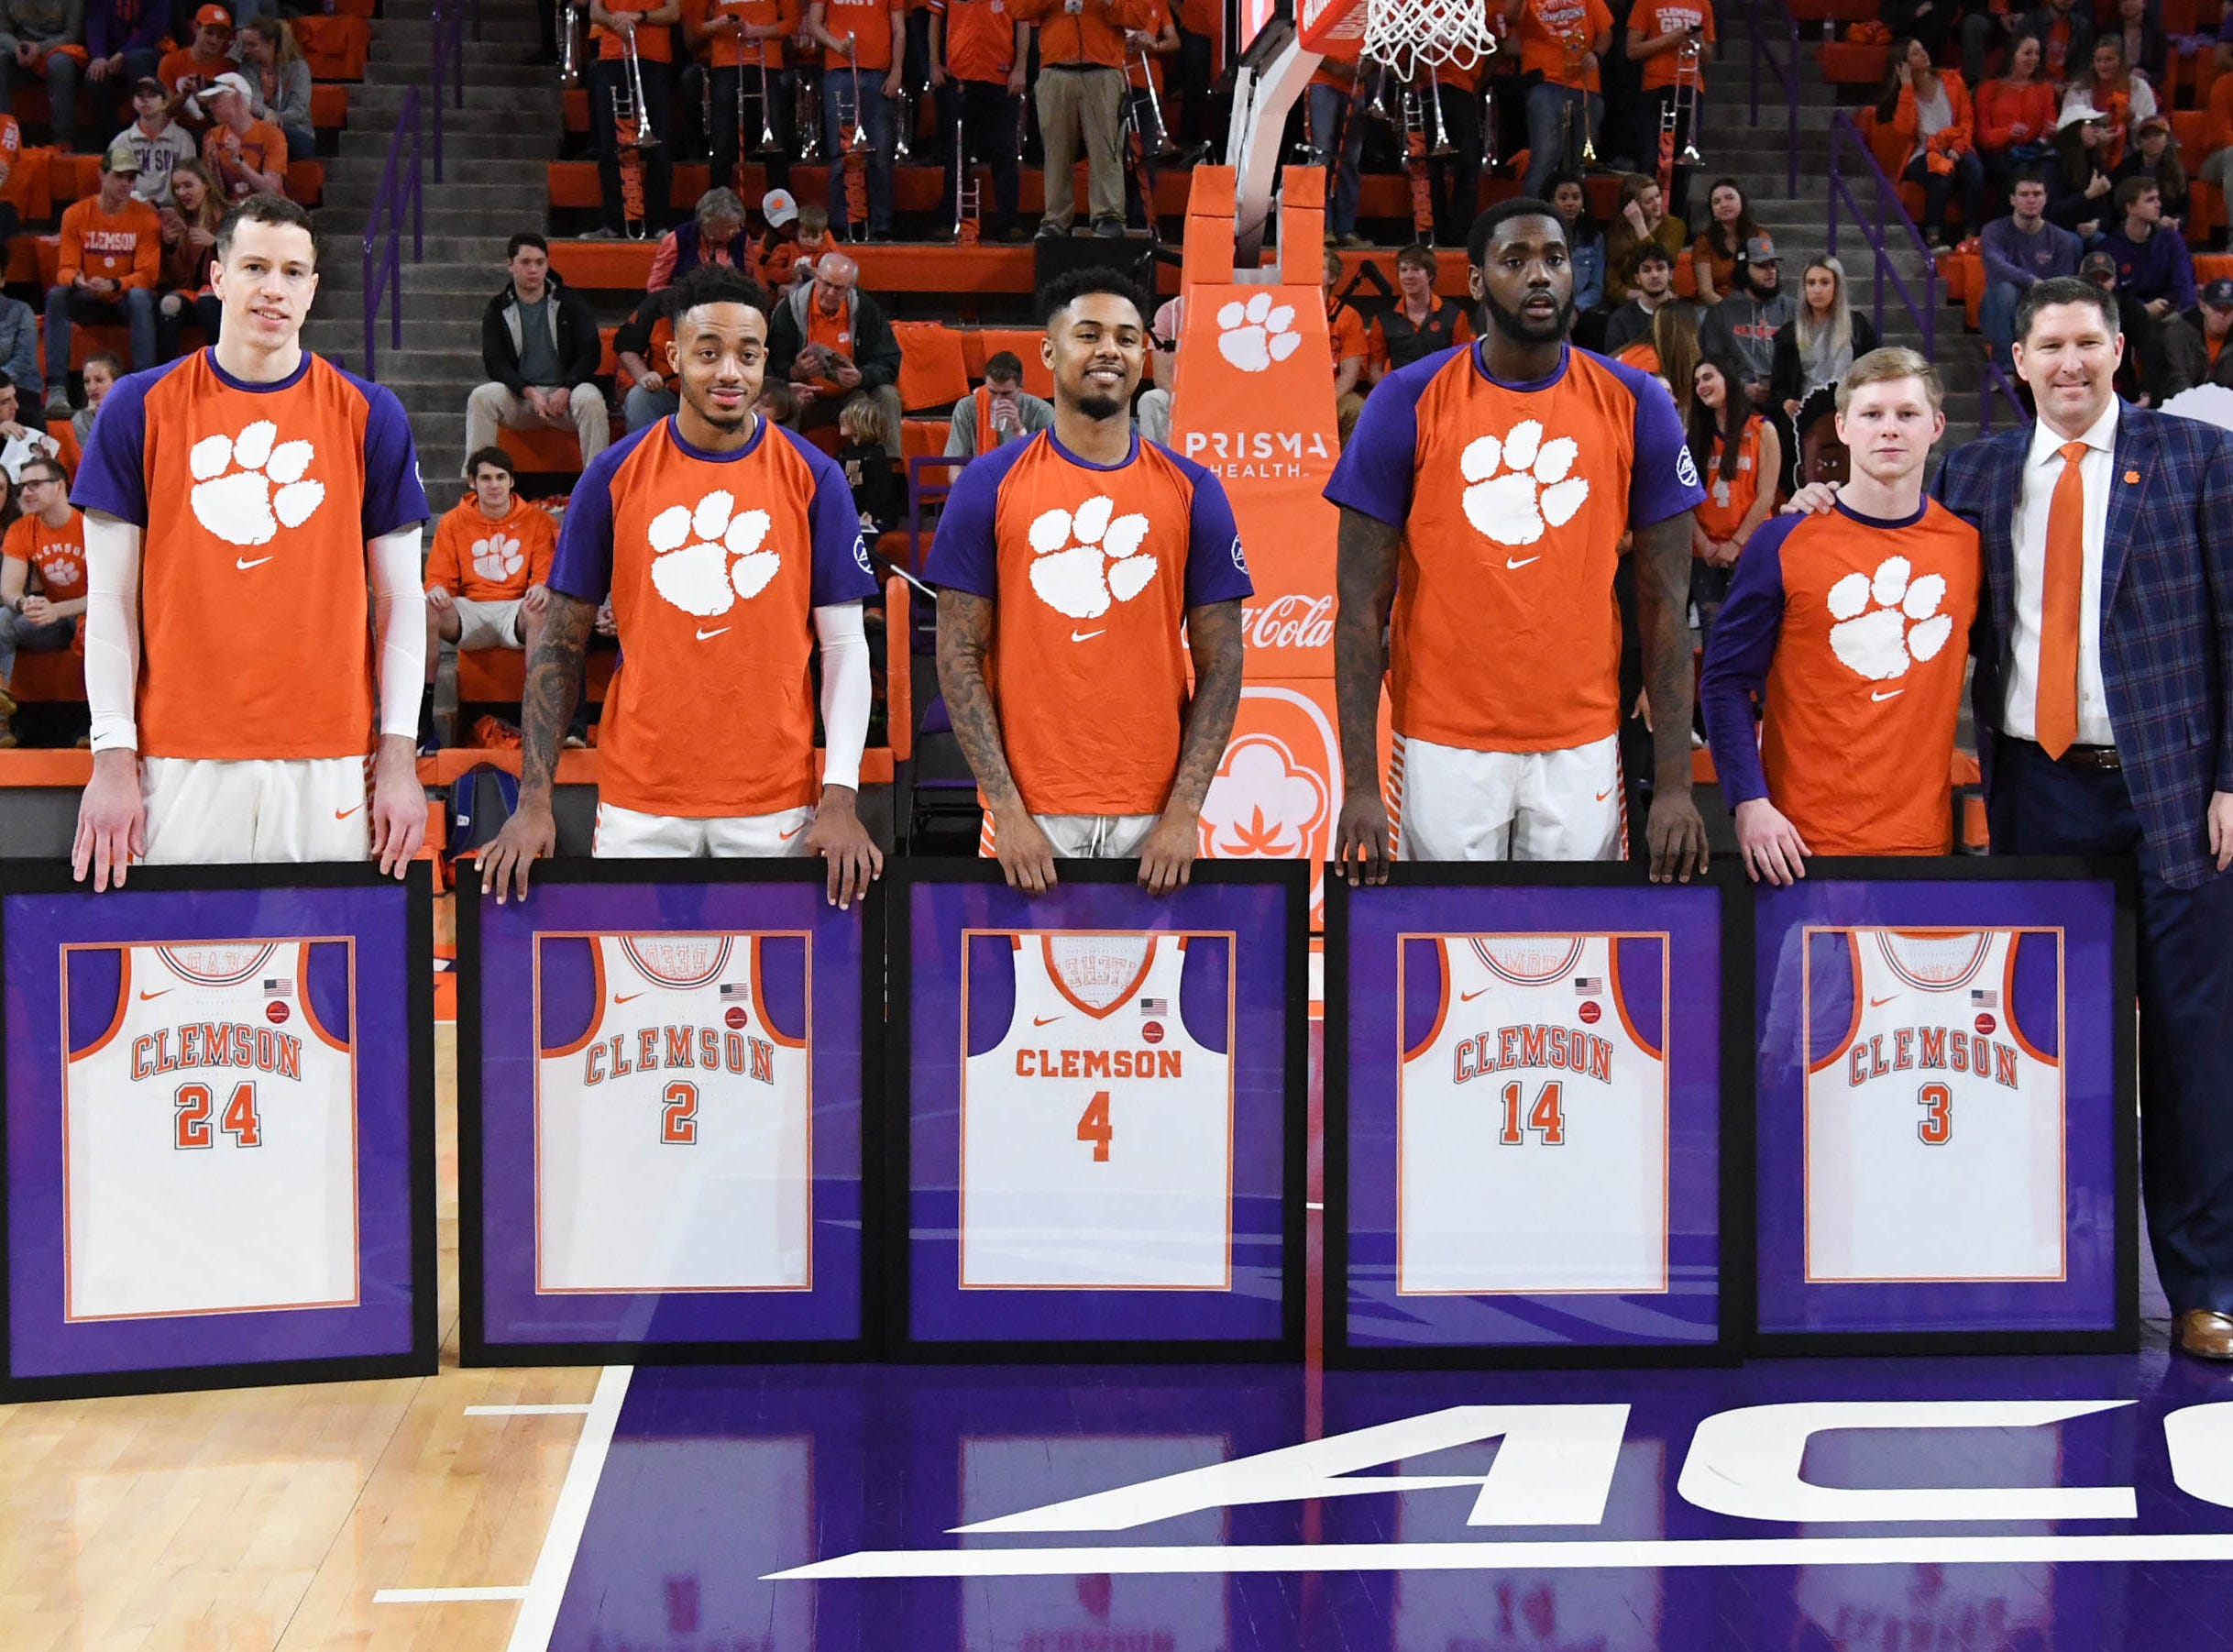 Clemson forward David Skara (24), Clemson guard Marcquise Reed (2), Clemson guard Shelton Mitchell (4), Clemson forward Elijah Thomas (14), and Clemson guard Lyles Davis (3) stand with Clemson head coach Brad Brownell honoring seniors before the game against Syracuse Saturday, March 9, 2019.